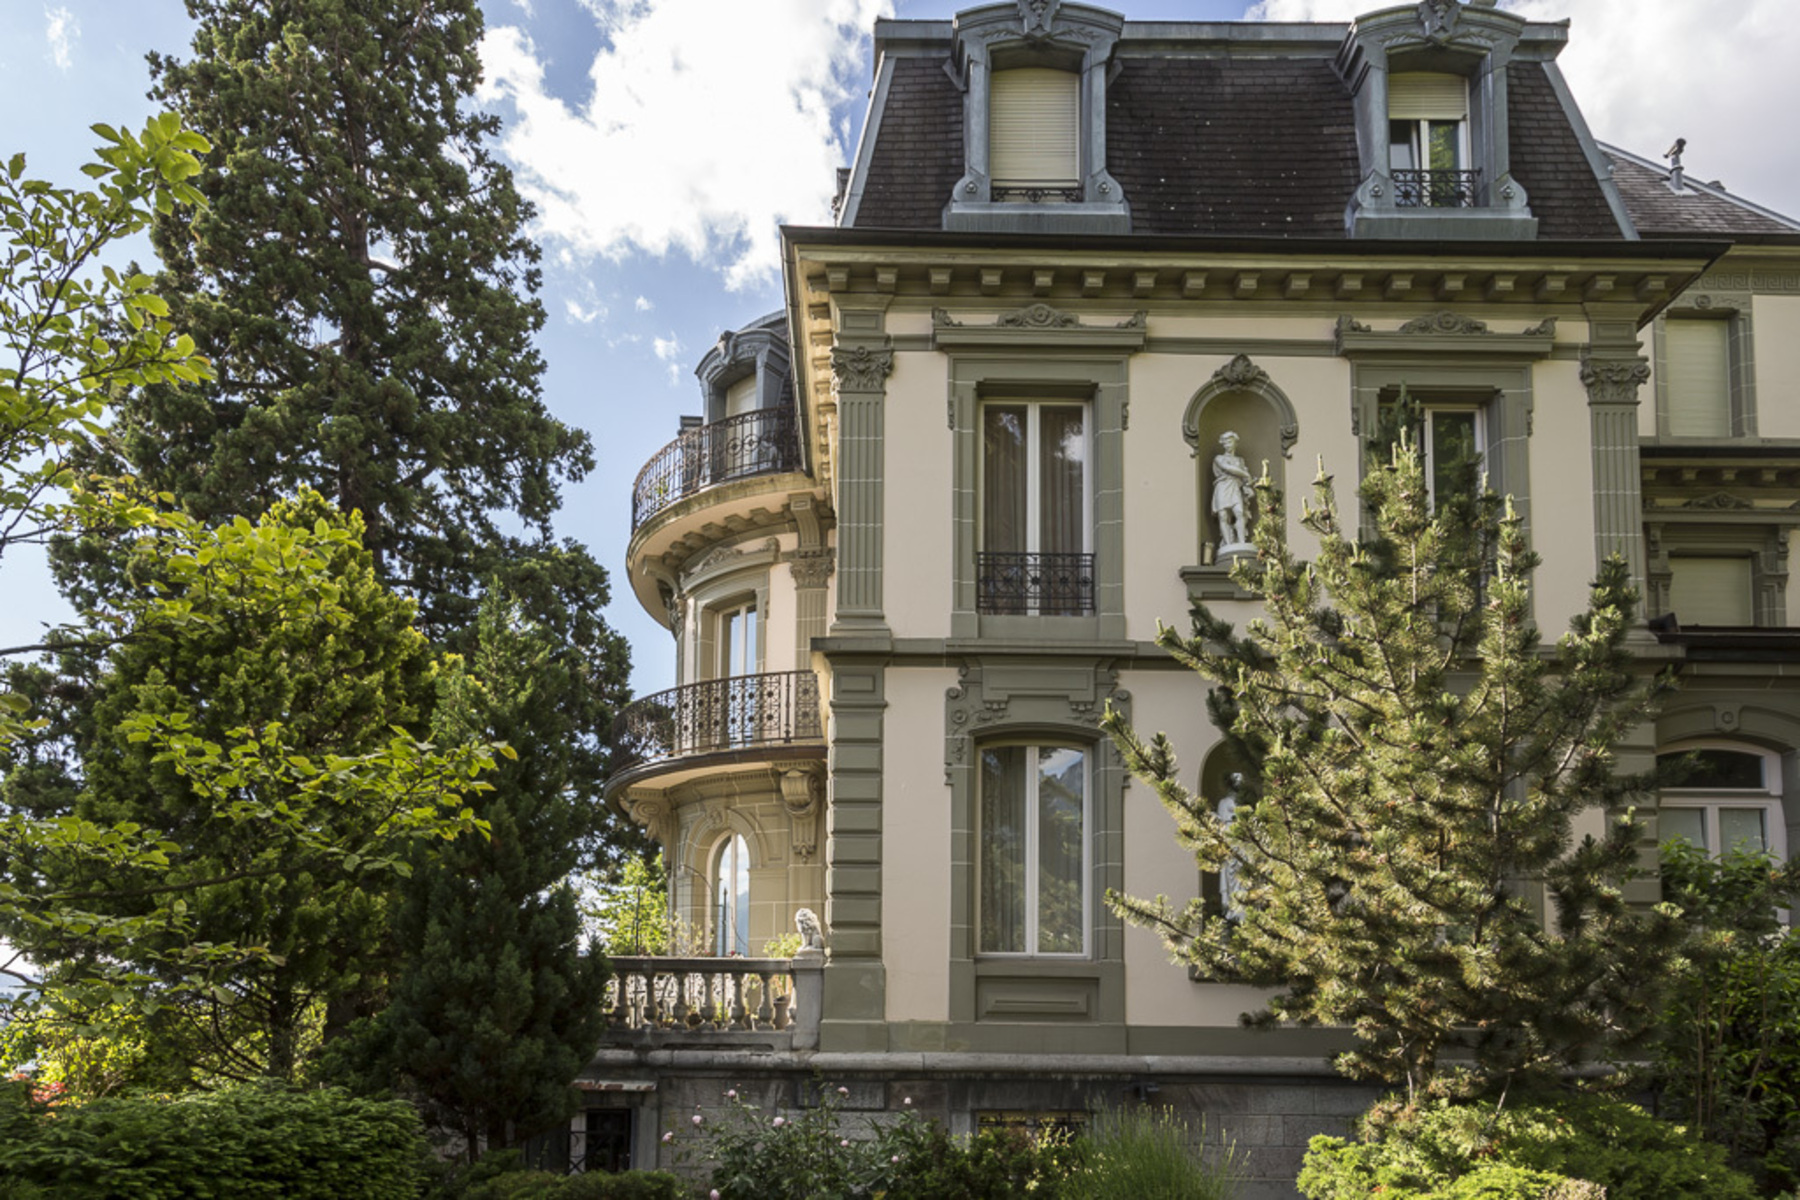 Condominium for Sale at 4.5-room apartment Luxury residence in leafy surroundings Montreux Montreux, Vaud, 1820 Switzerland